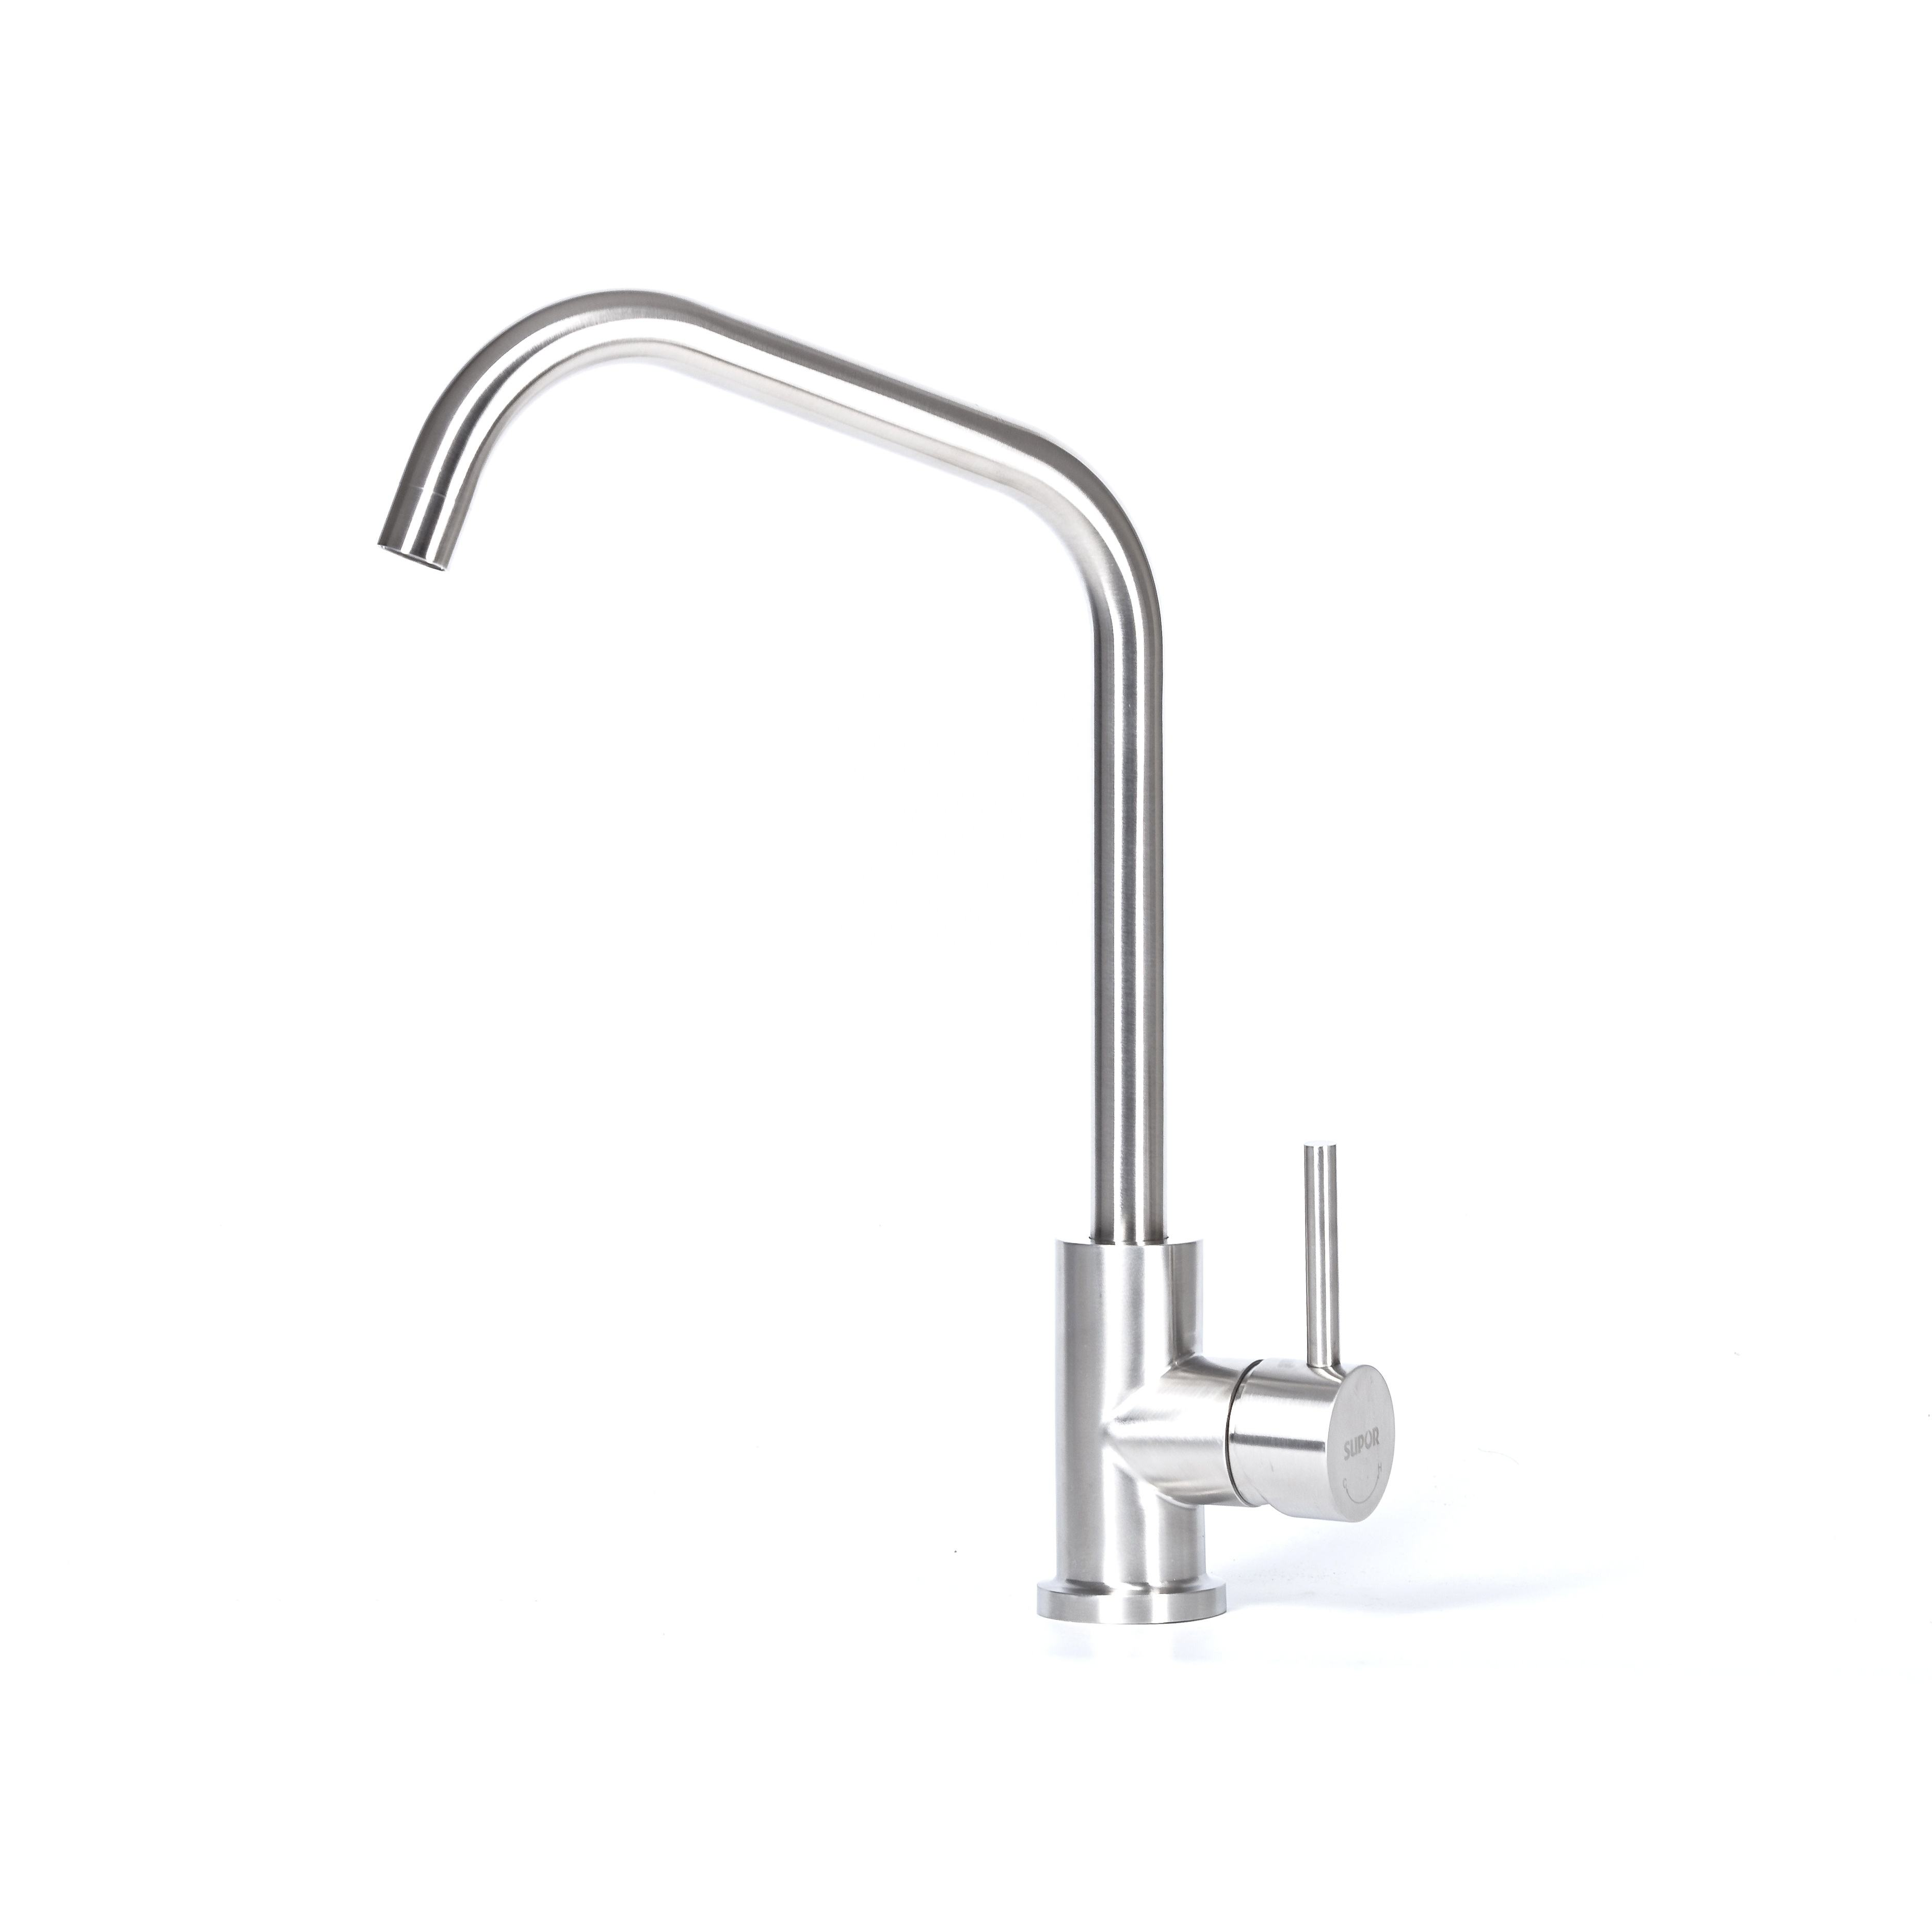 304 Stainless Steel 360 Degree rotatable Sink Mixer Kitchen Faucet Tap